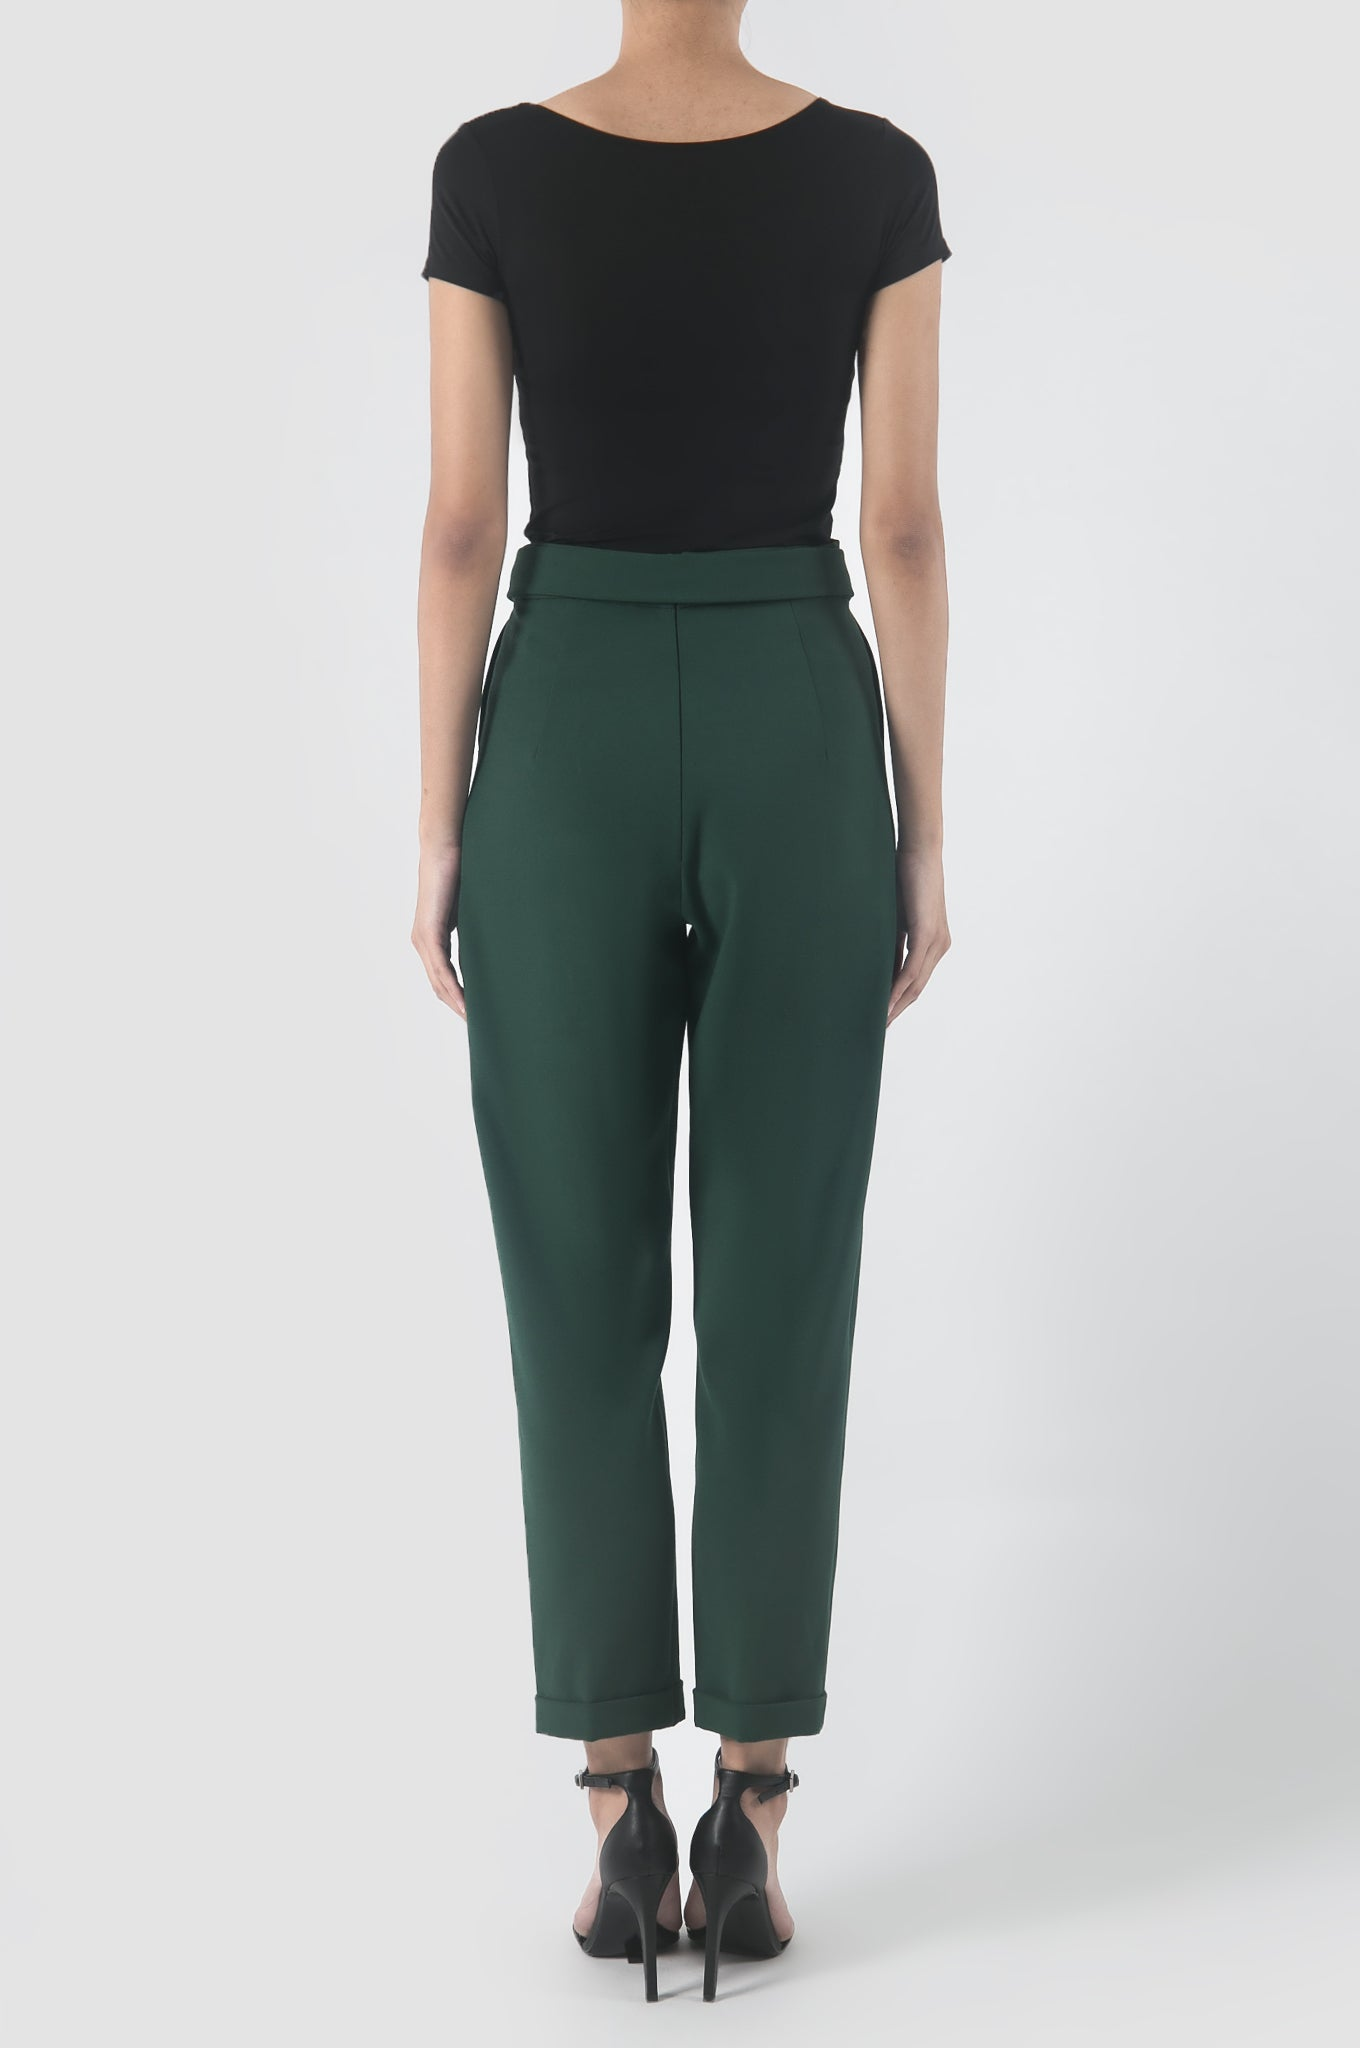 Everglade Green Casa Pants